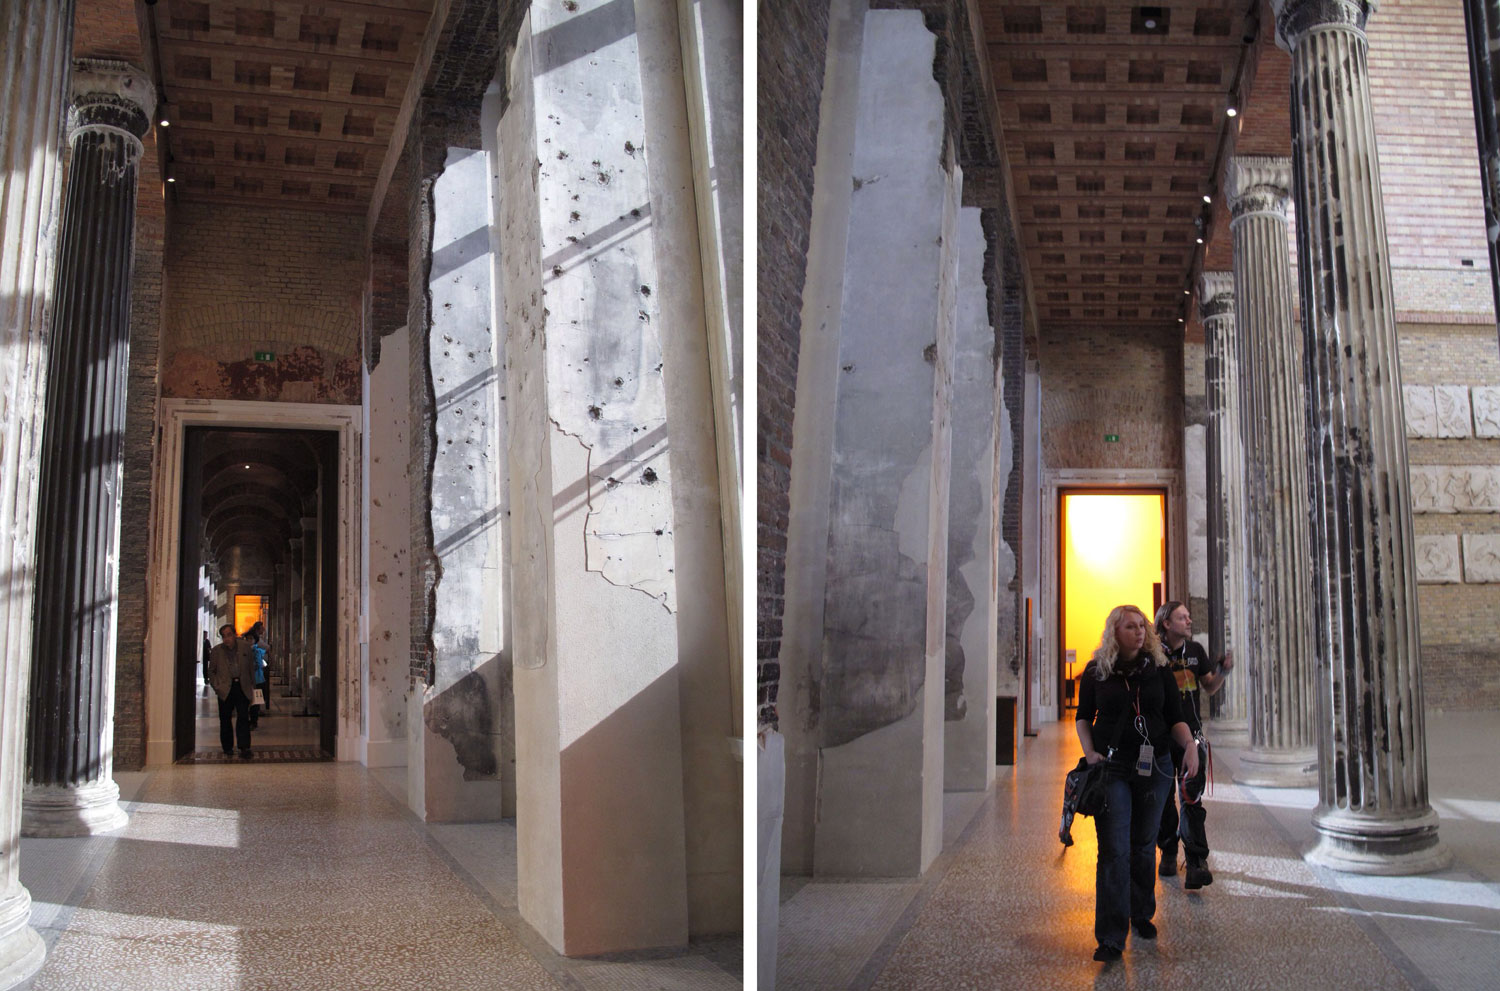 berlin_neues museum_museo_rehabilitacion_david chipperfield